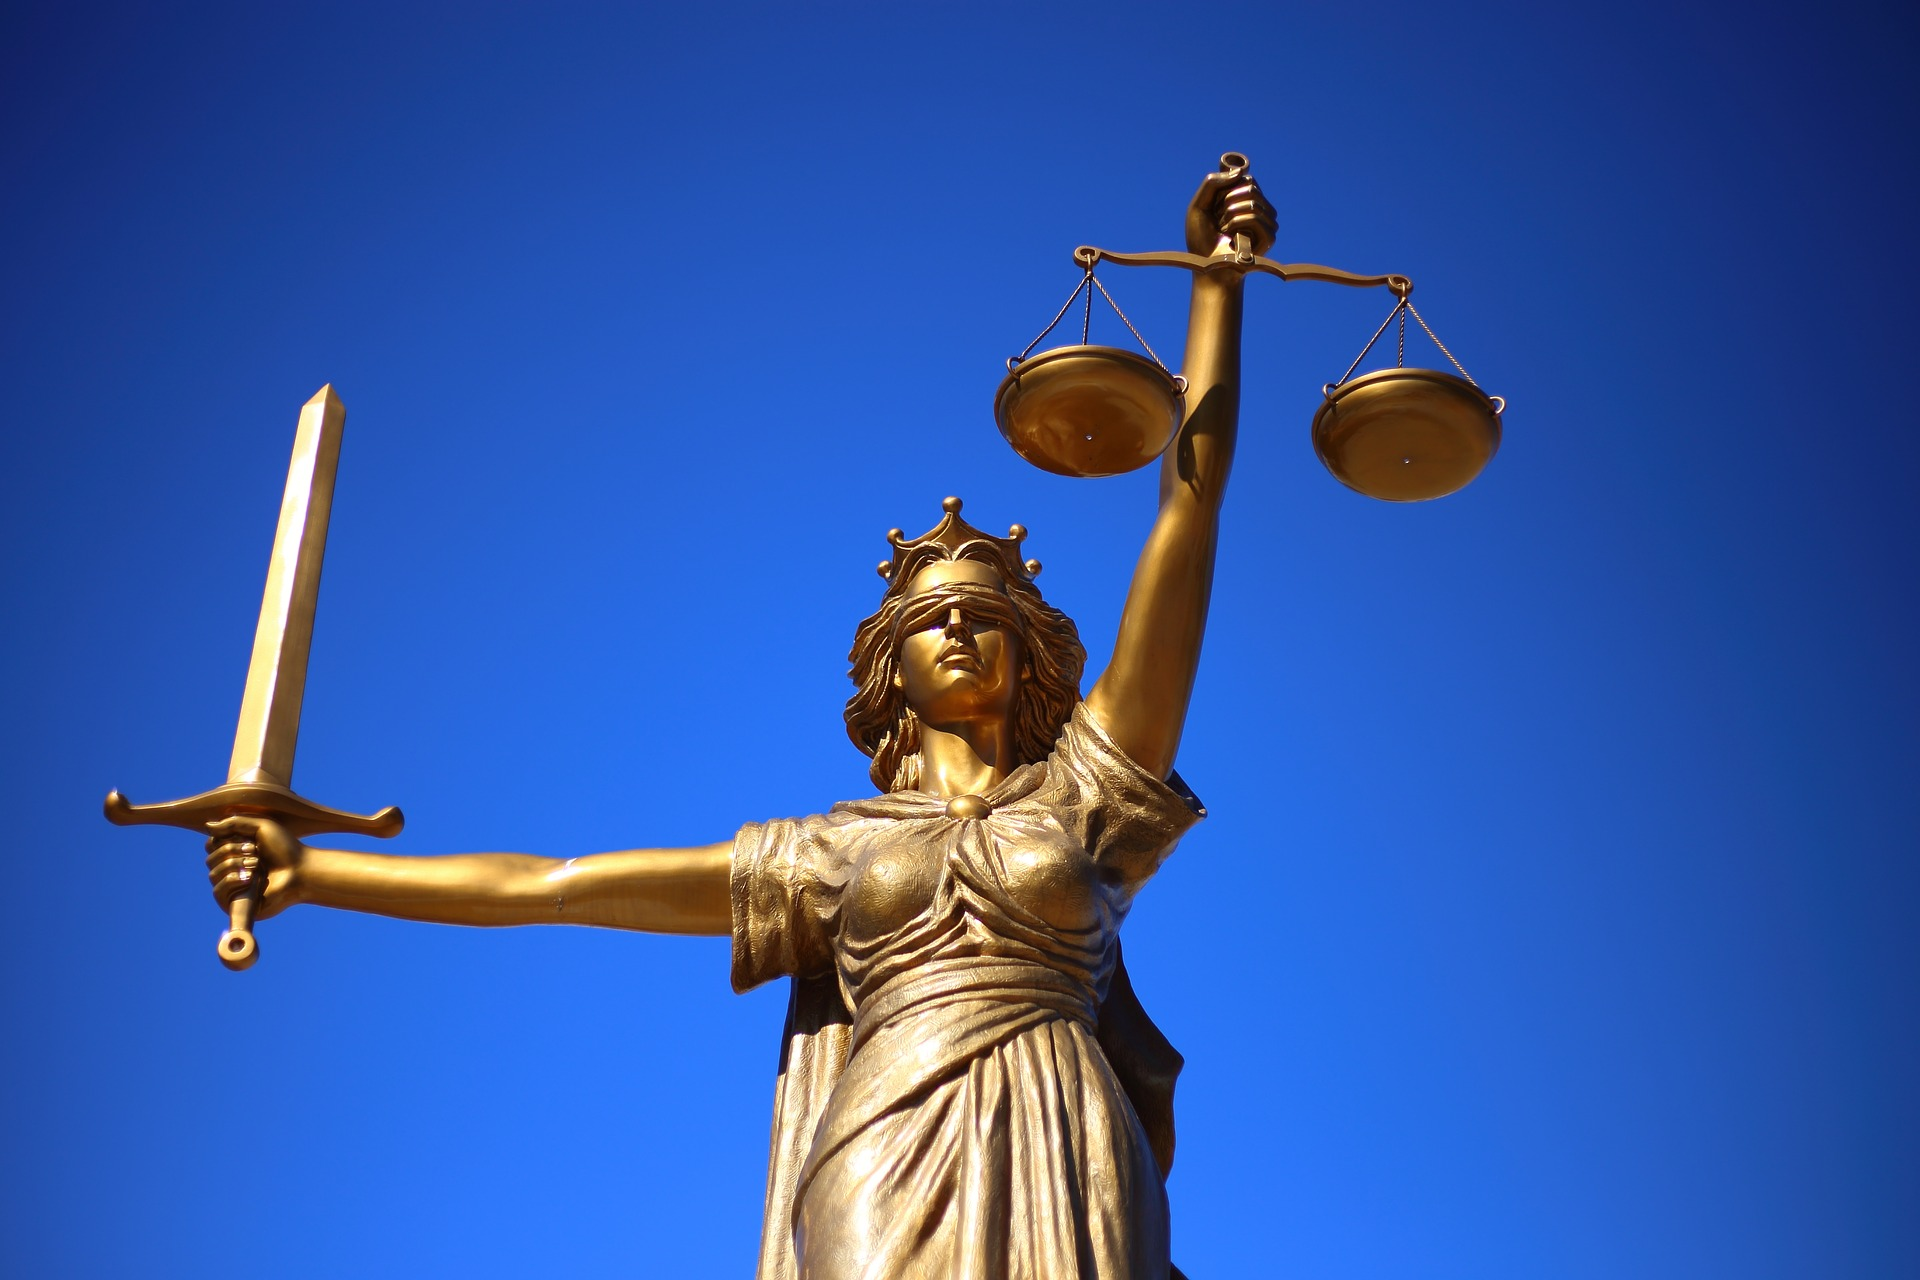 Photograph: Gold statute of Blind Lady Justice holding a sword and scales.